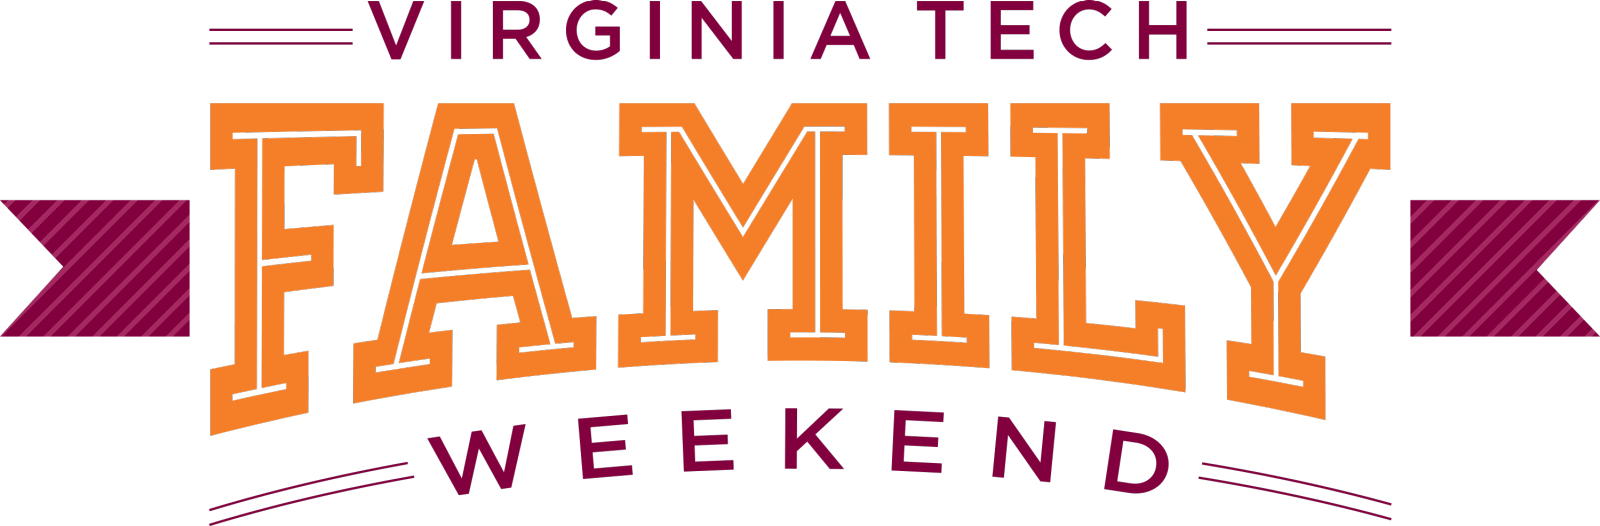 Week End Spring Family Weekend April 12 14 2019 Student Affairs